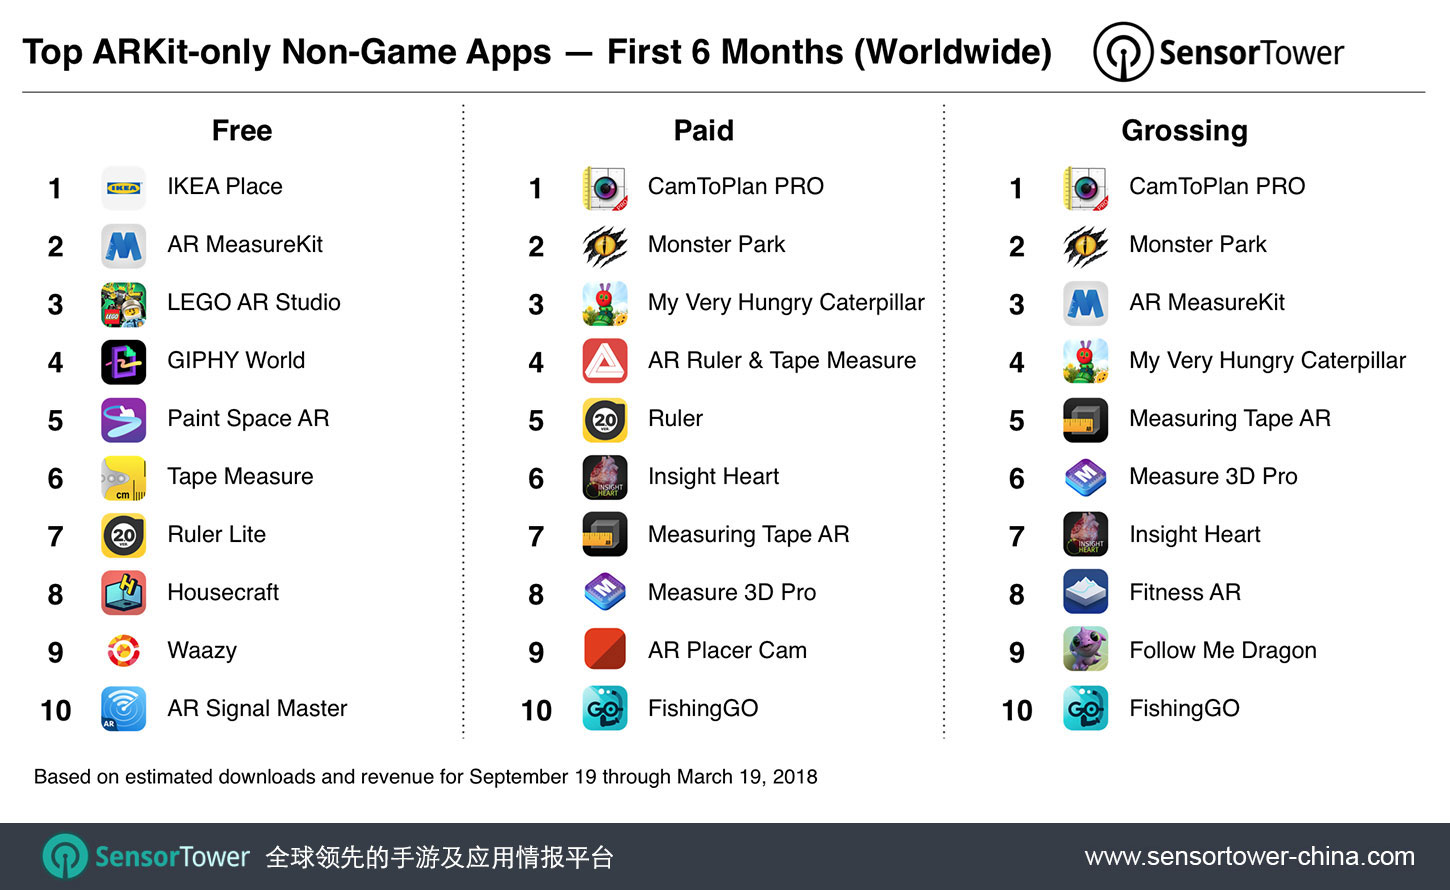 Ranking of top free, paid, and grossing ARKit non-game apps overall for September 19, 2017 to March 19, 2018 CN  - top arkit non games six months cn - 亮相半年后,全面基于ARKit技术而开发的App全球下载量超过1300万次,几乎一半来自游戏